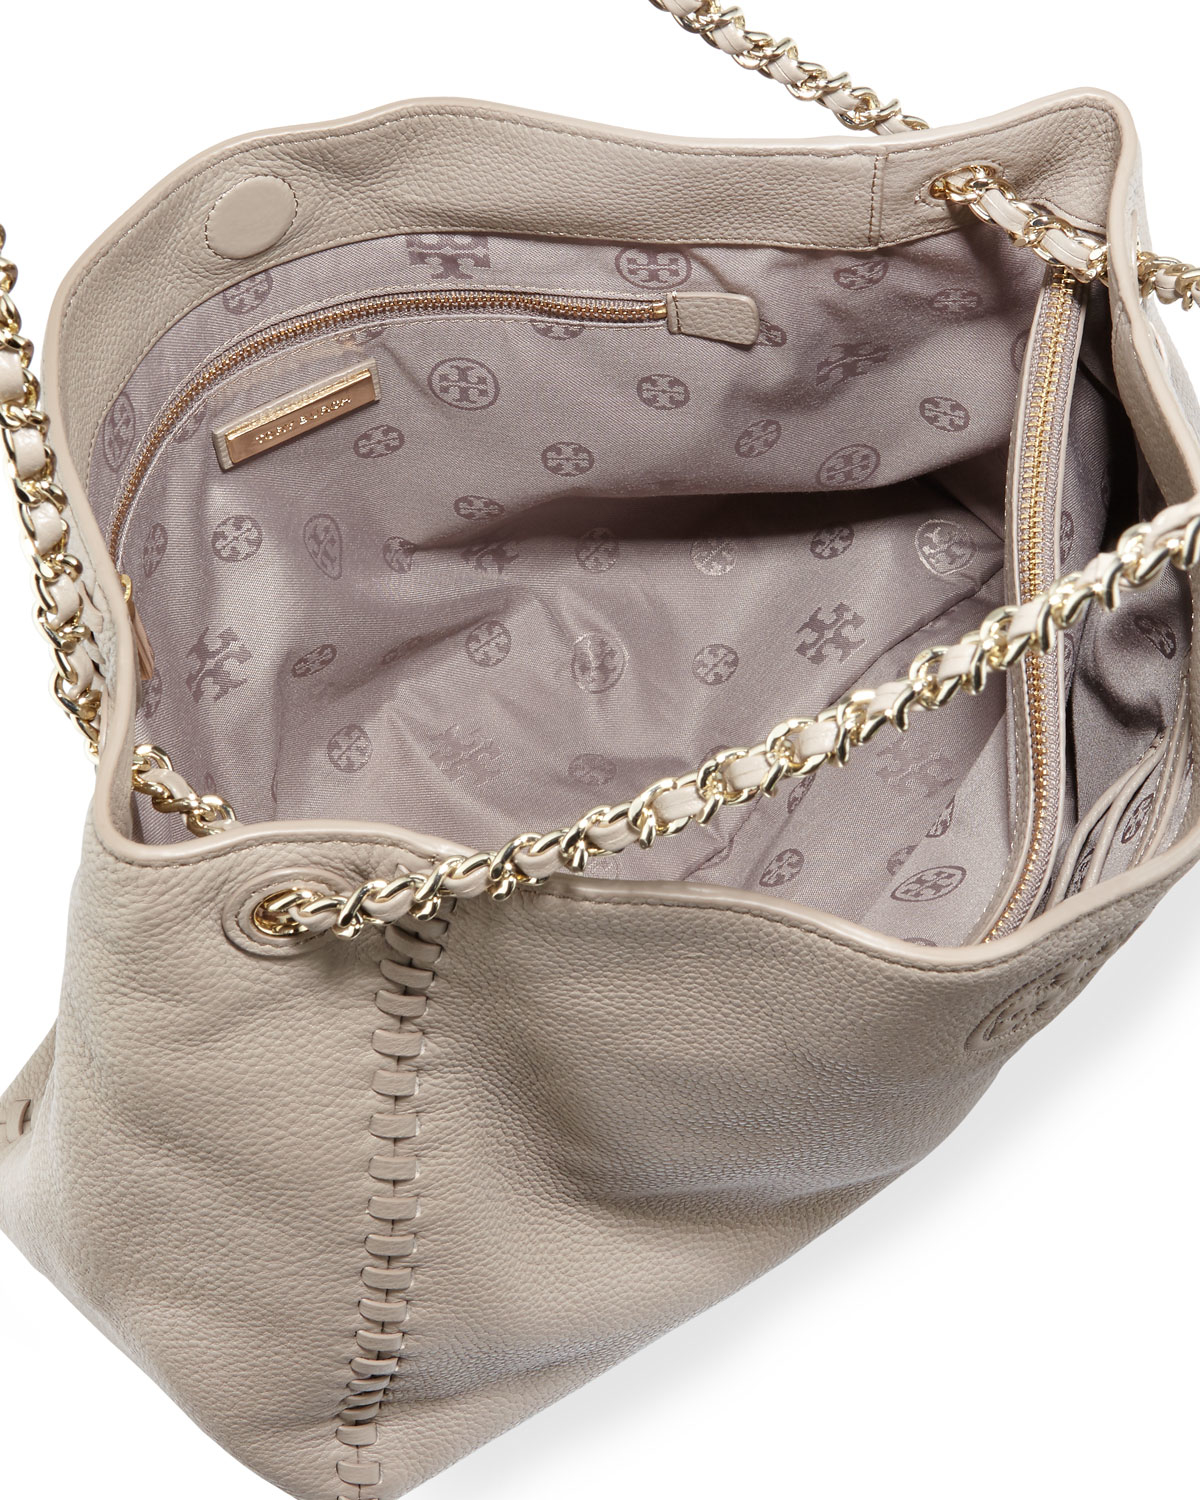 0a12284425d ... coupon code for lyst tory burch marion chain strap slouchy tote bag in  gray adb12 bd9d0